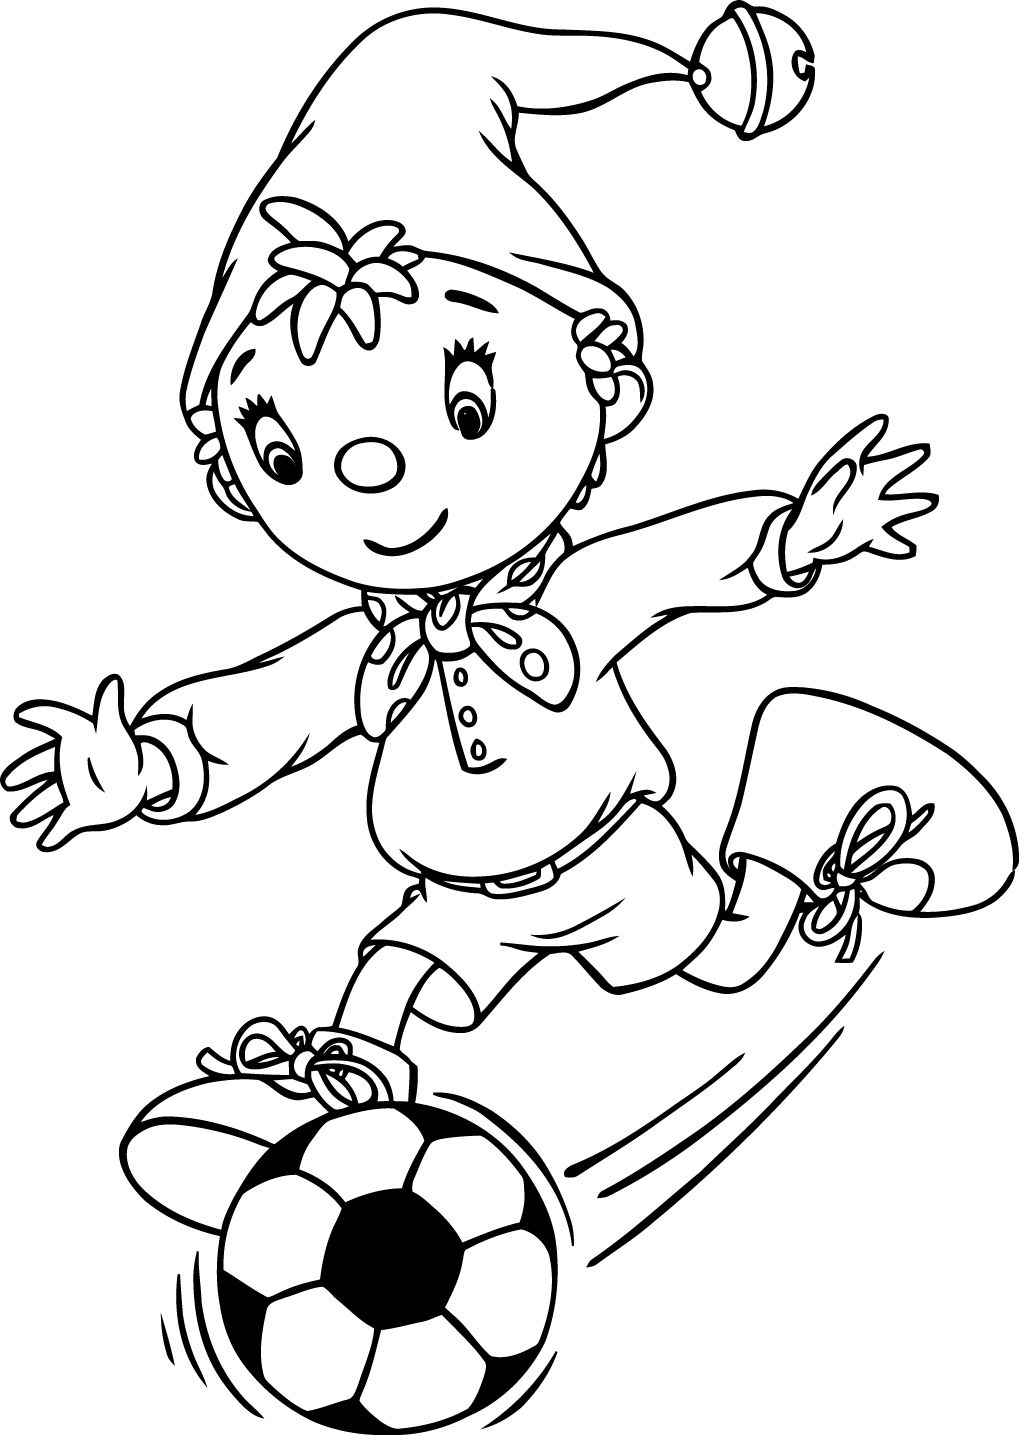 nice noddy 97 play football coloring page mcoloring pinterest